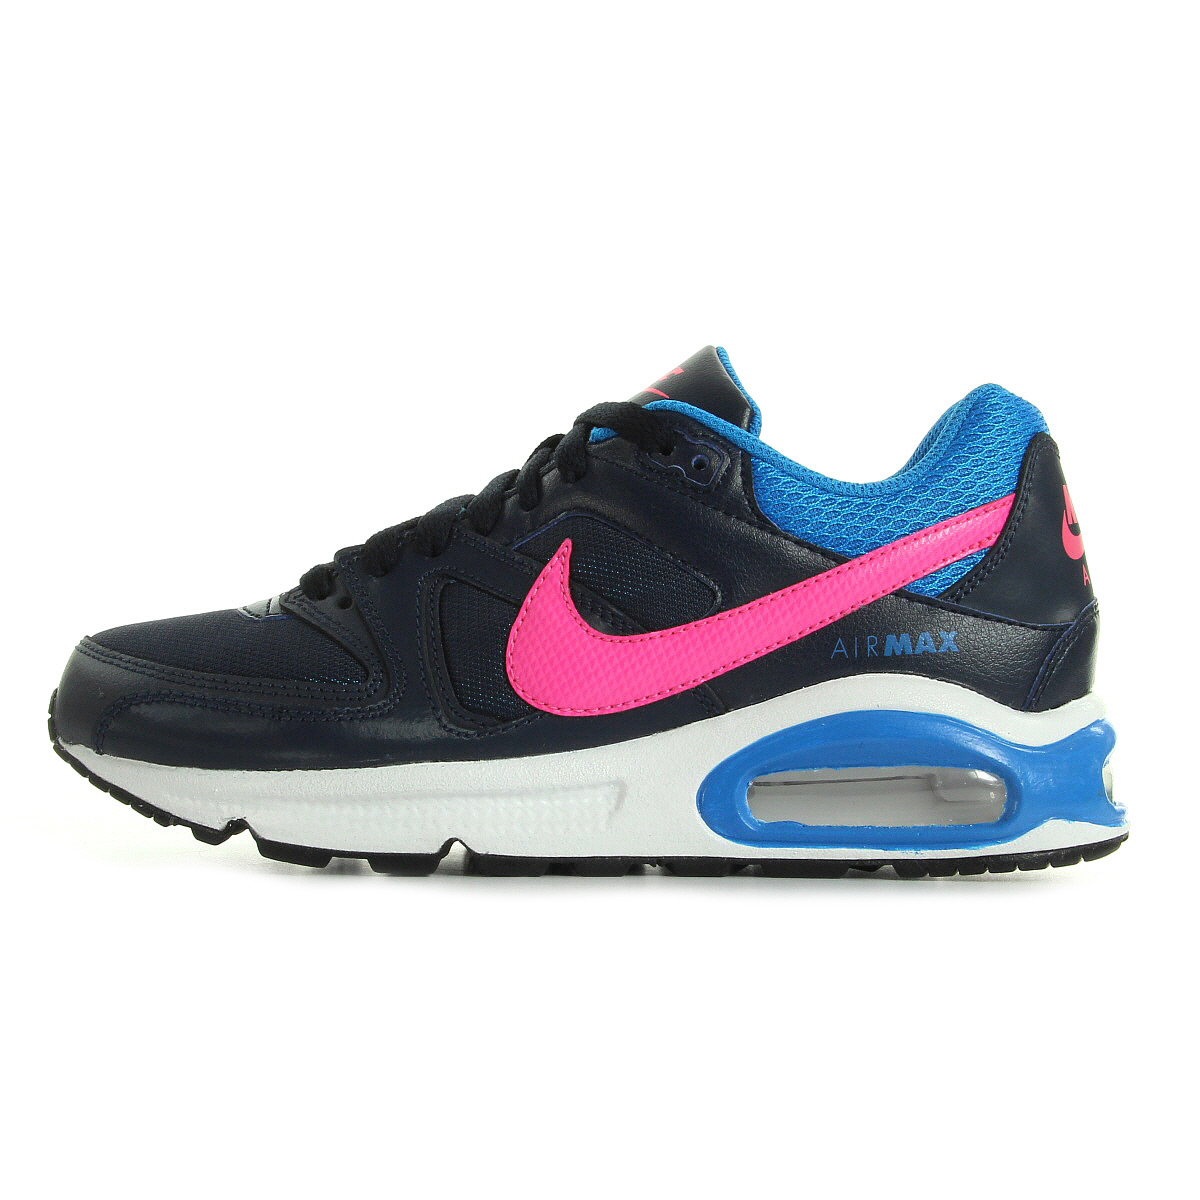 nike air max command fille nike dunk libert de londres. Black Bedroom Furniture Sets. Home Design Ideas